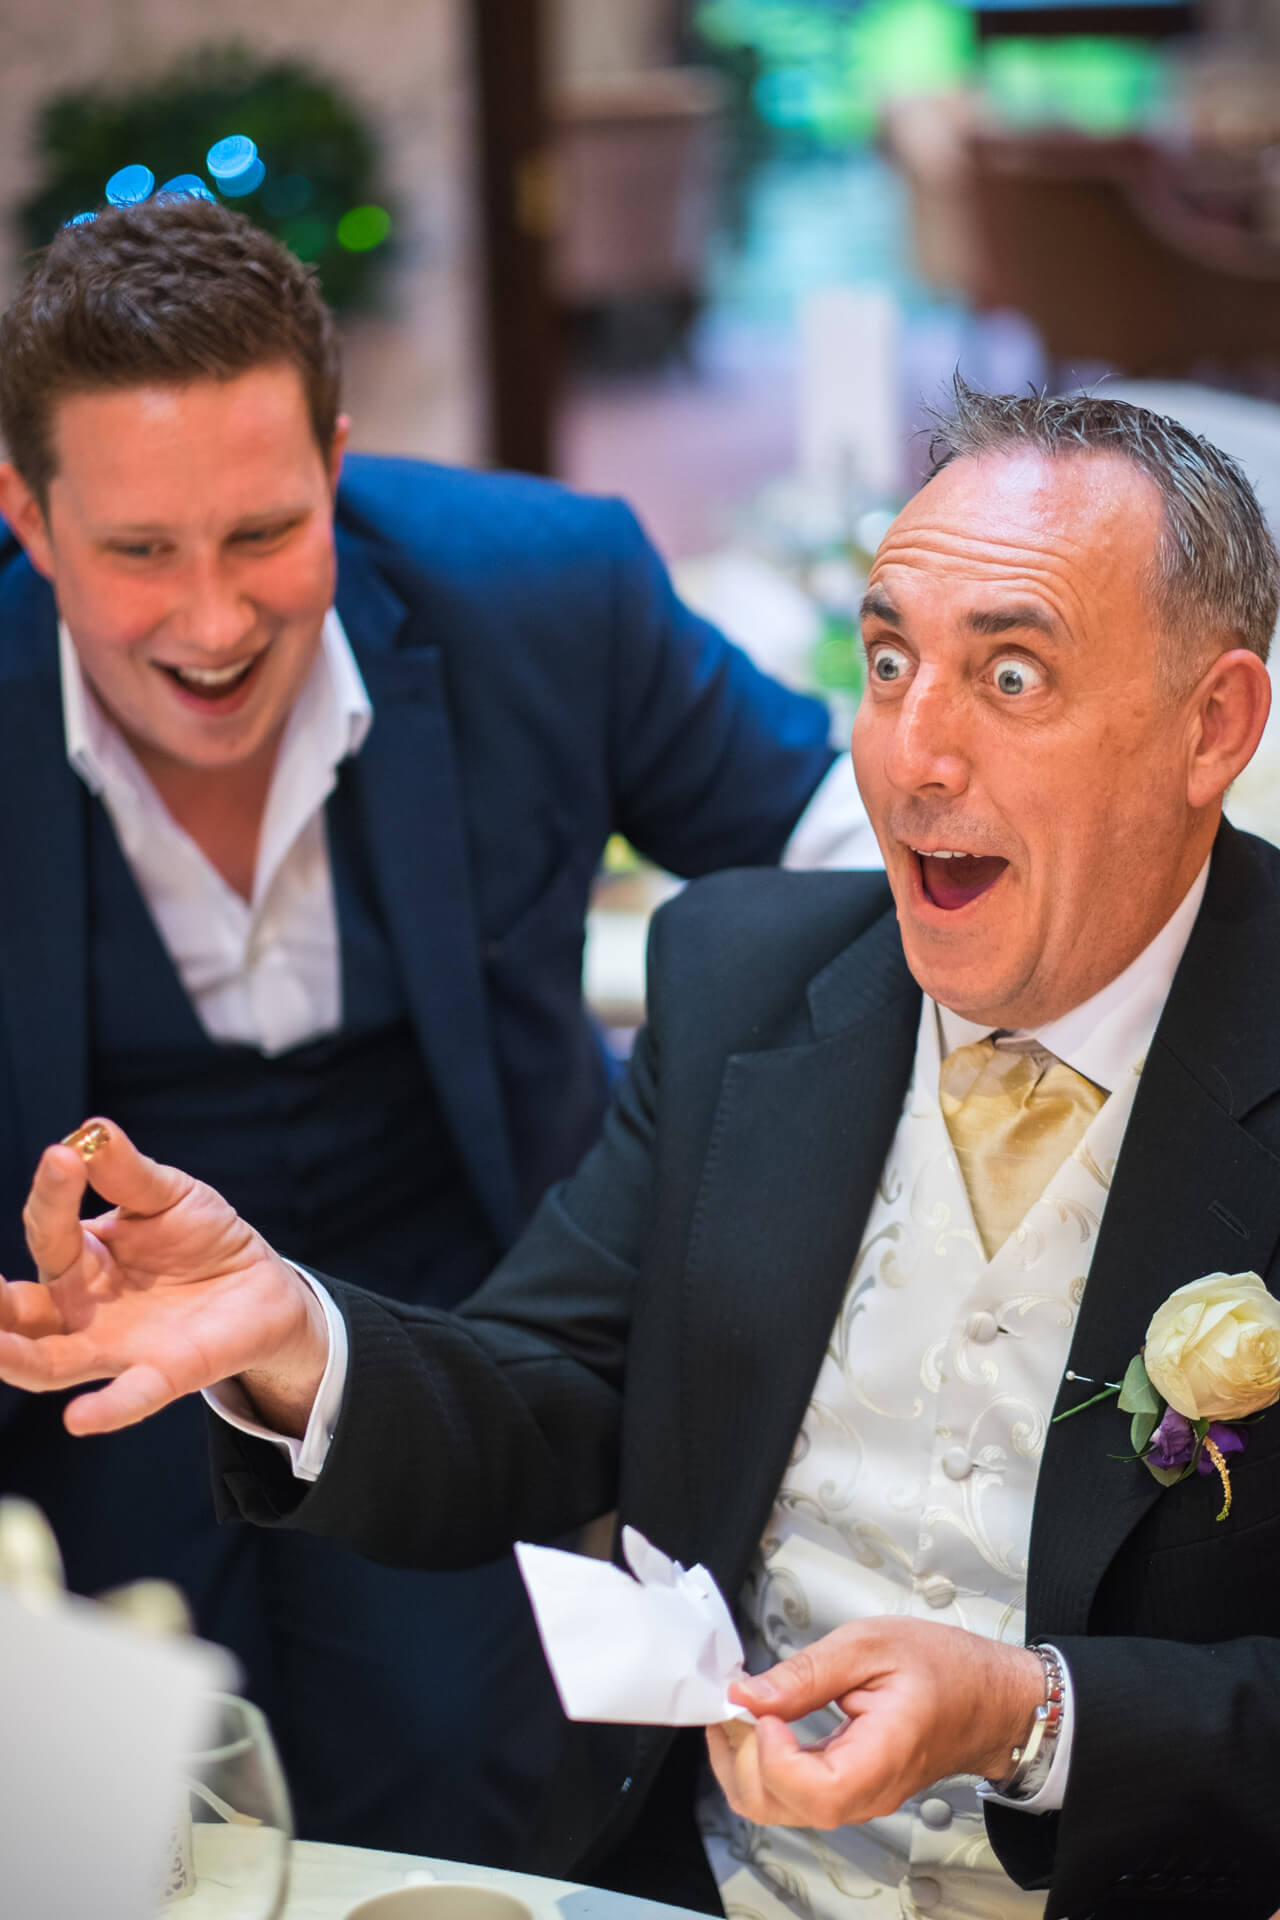 Two men at a wedding, one's amazed by a magic trick